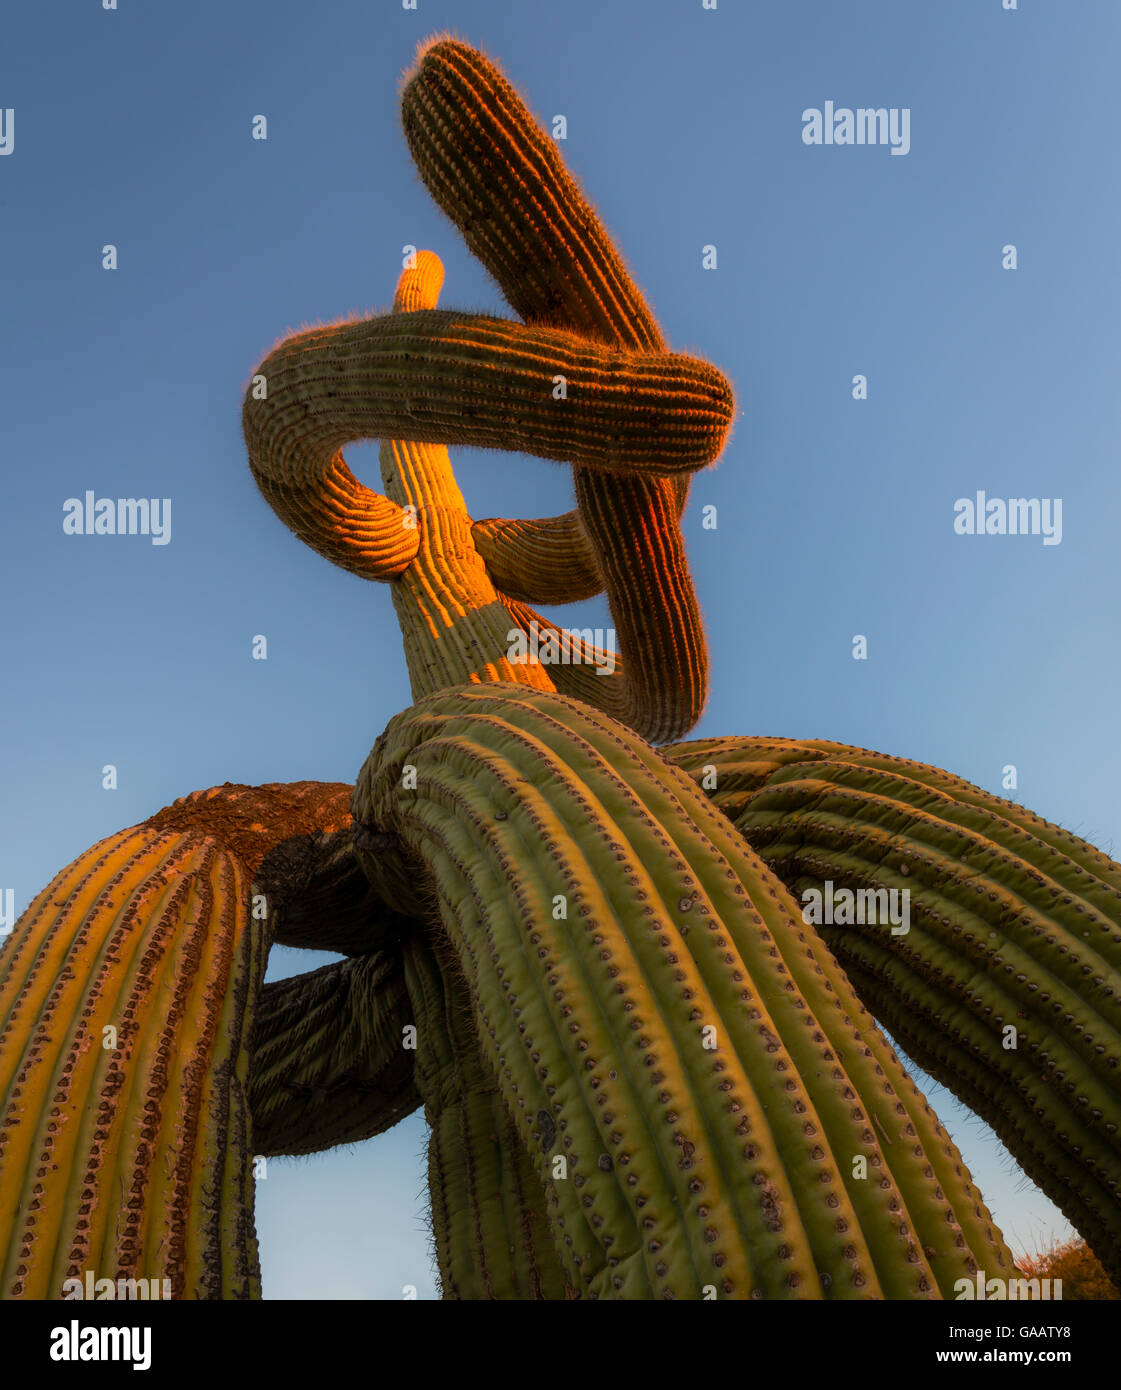 Low angle view of Saguaro cactus (Carnegiea gigantea) with twisted lowered arms drooping to the ground, a result - Stock Image